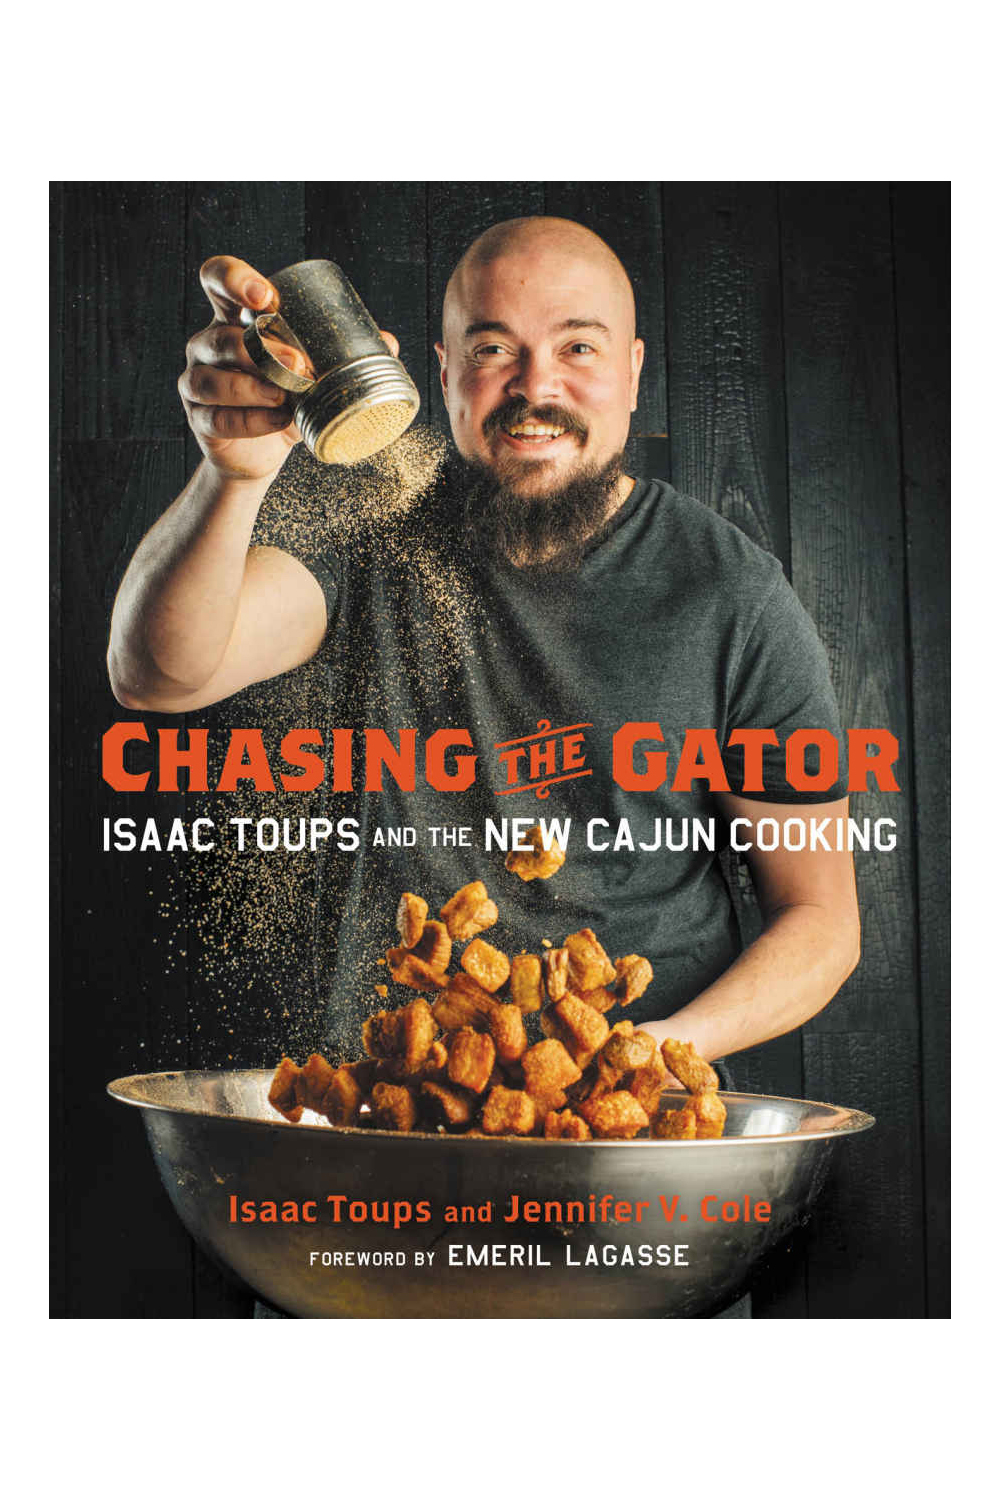 Chasing the Gator Cookbook